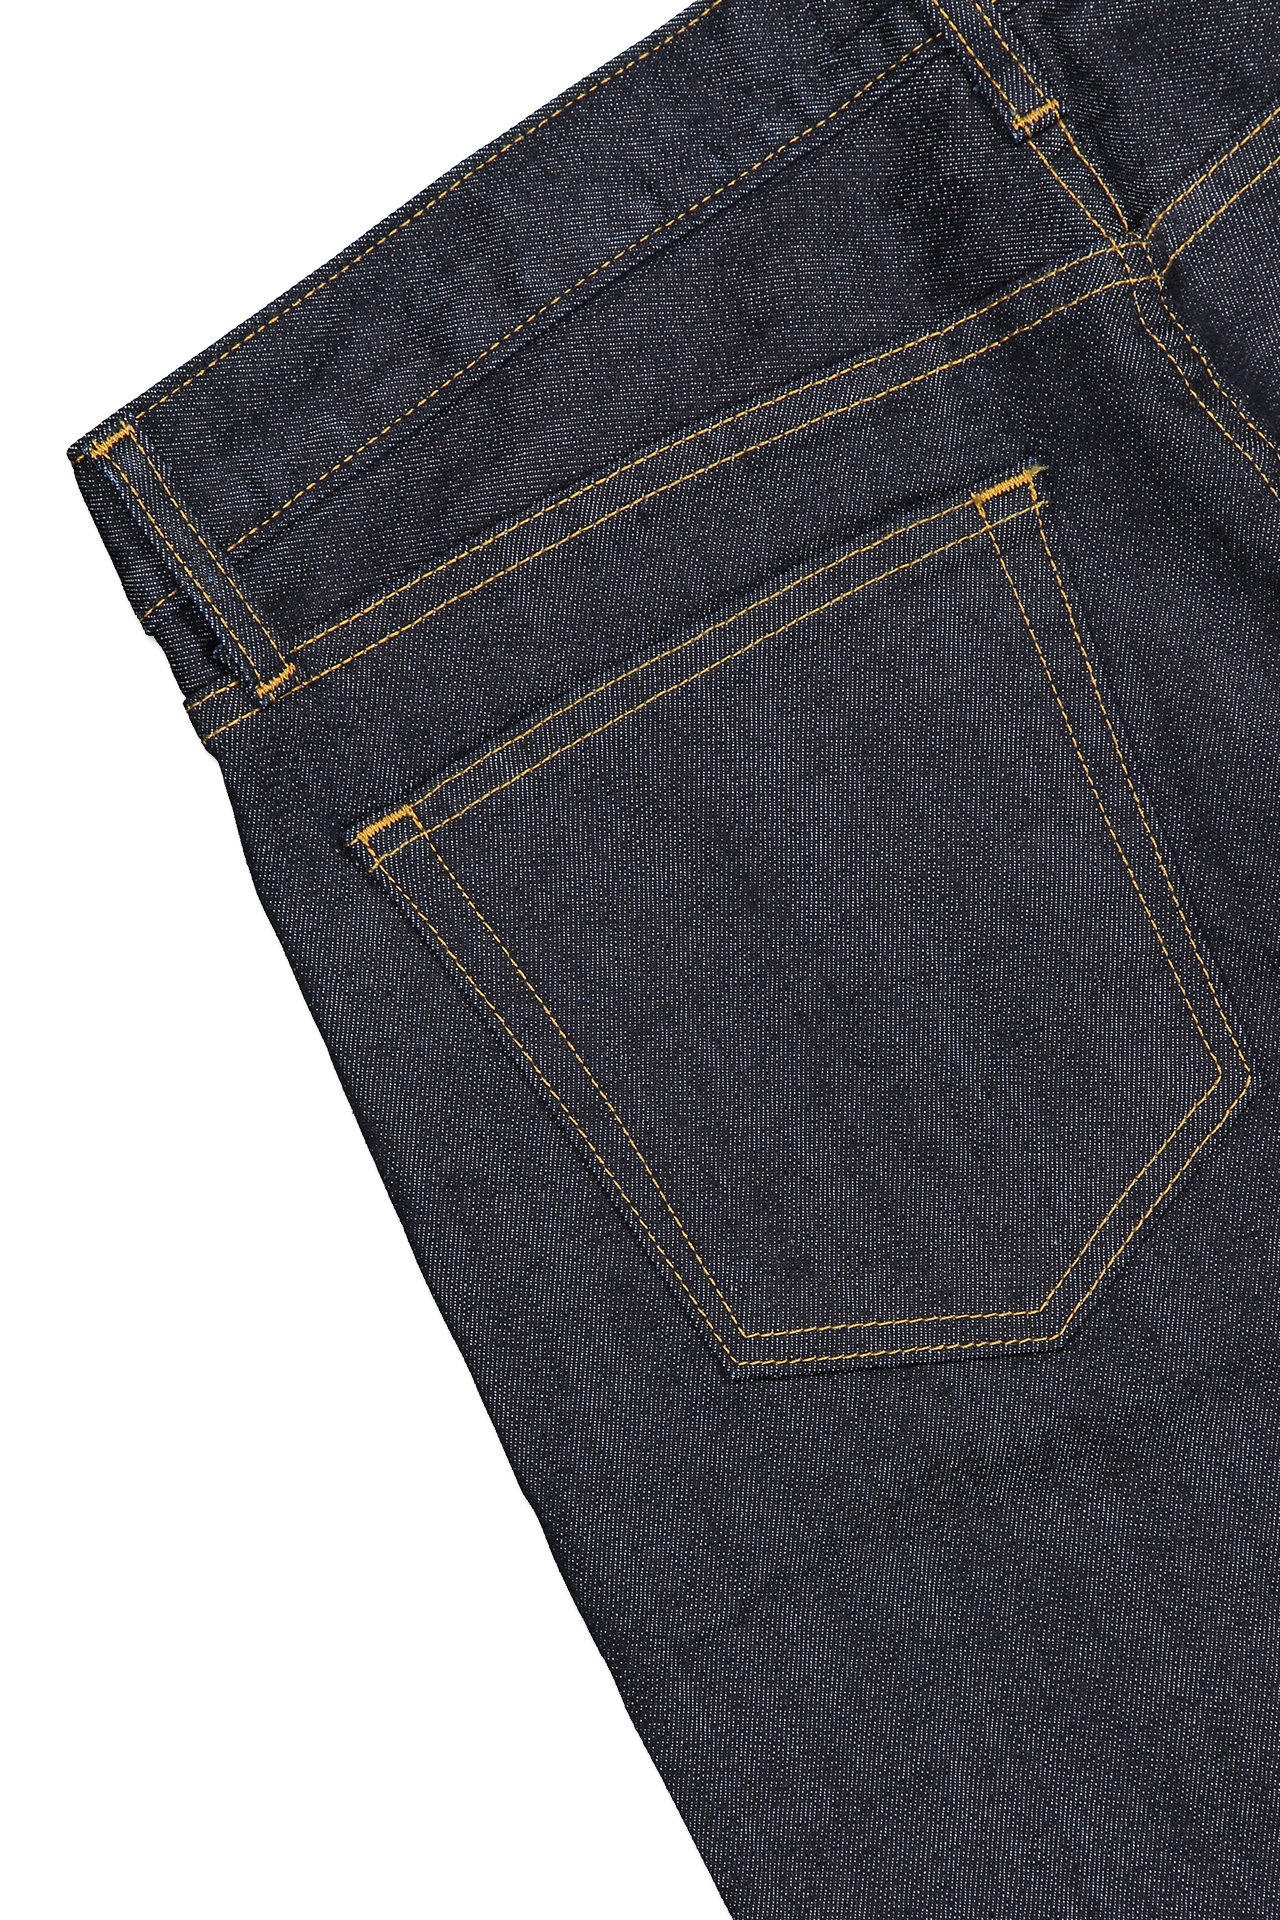 Back pocket detail image of S.M.N. Denim Finn Tapered Slim Bravo